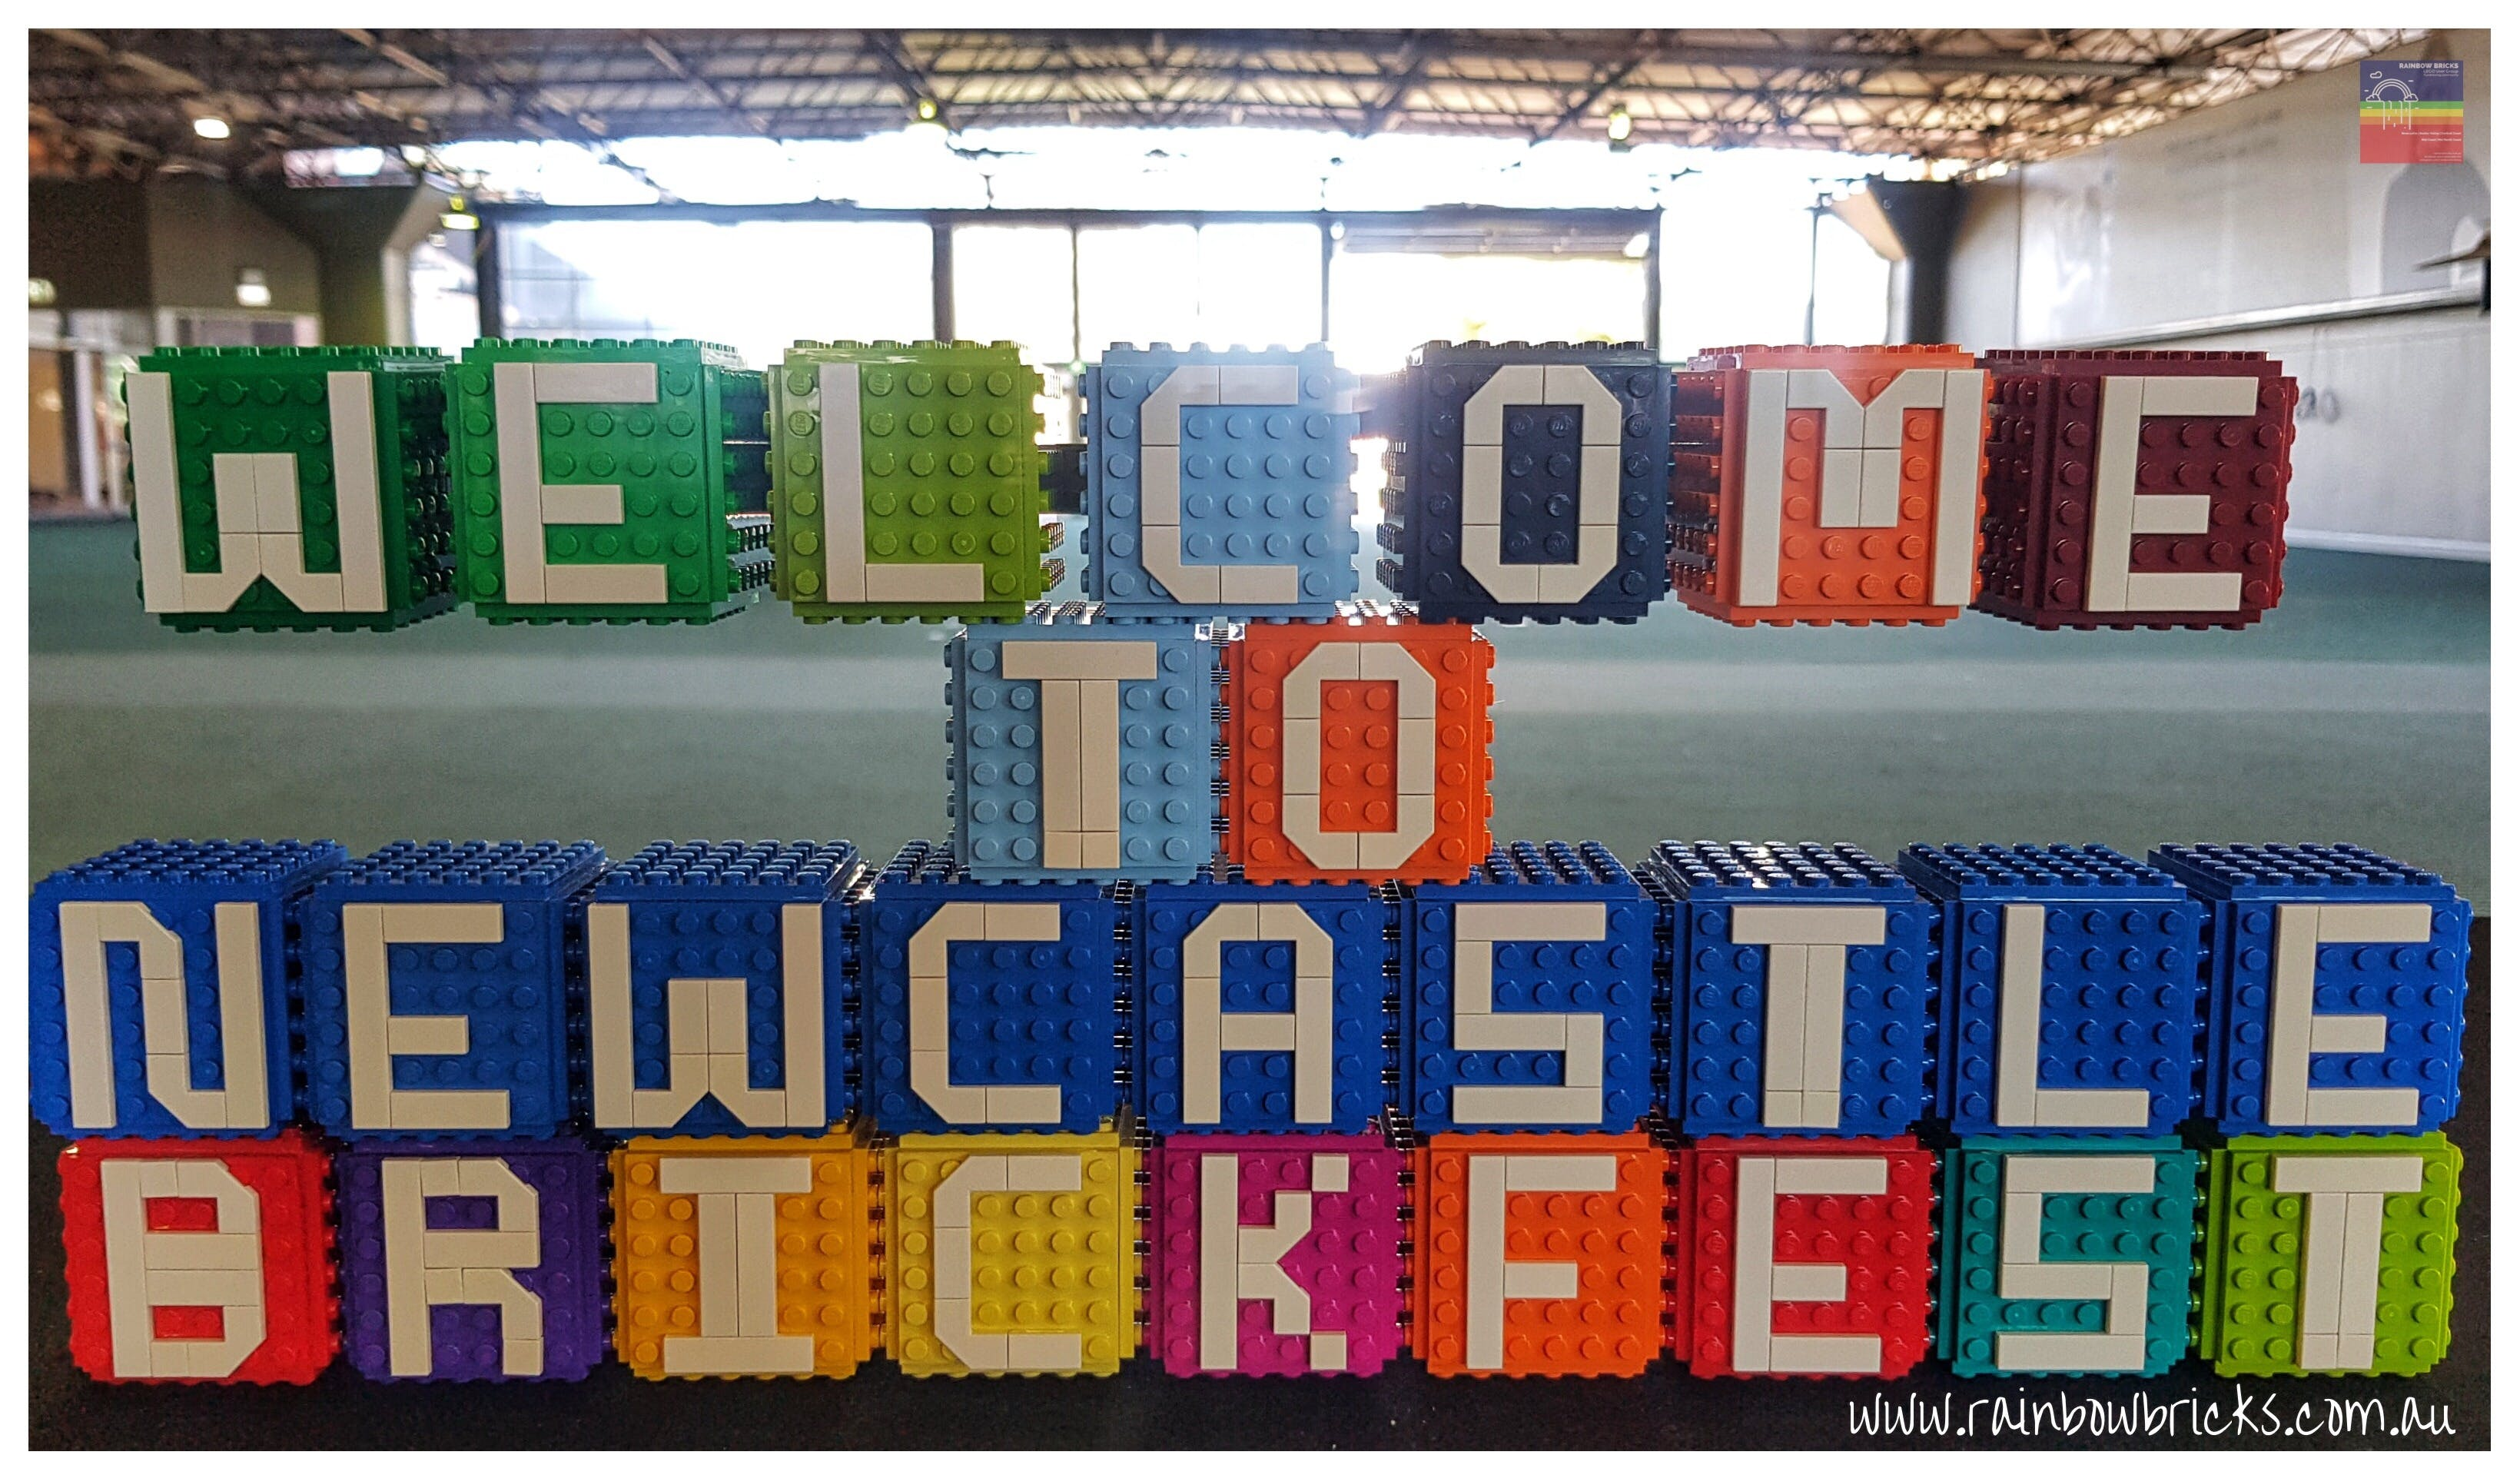 Newcastle Brickfest at Home A Virtual Lego Fan Event - Whitsundays Tourism